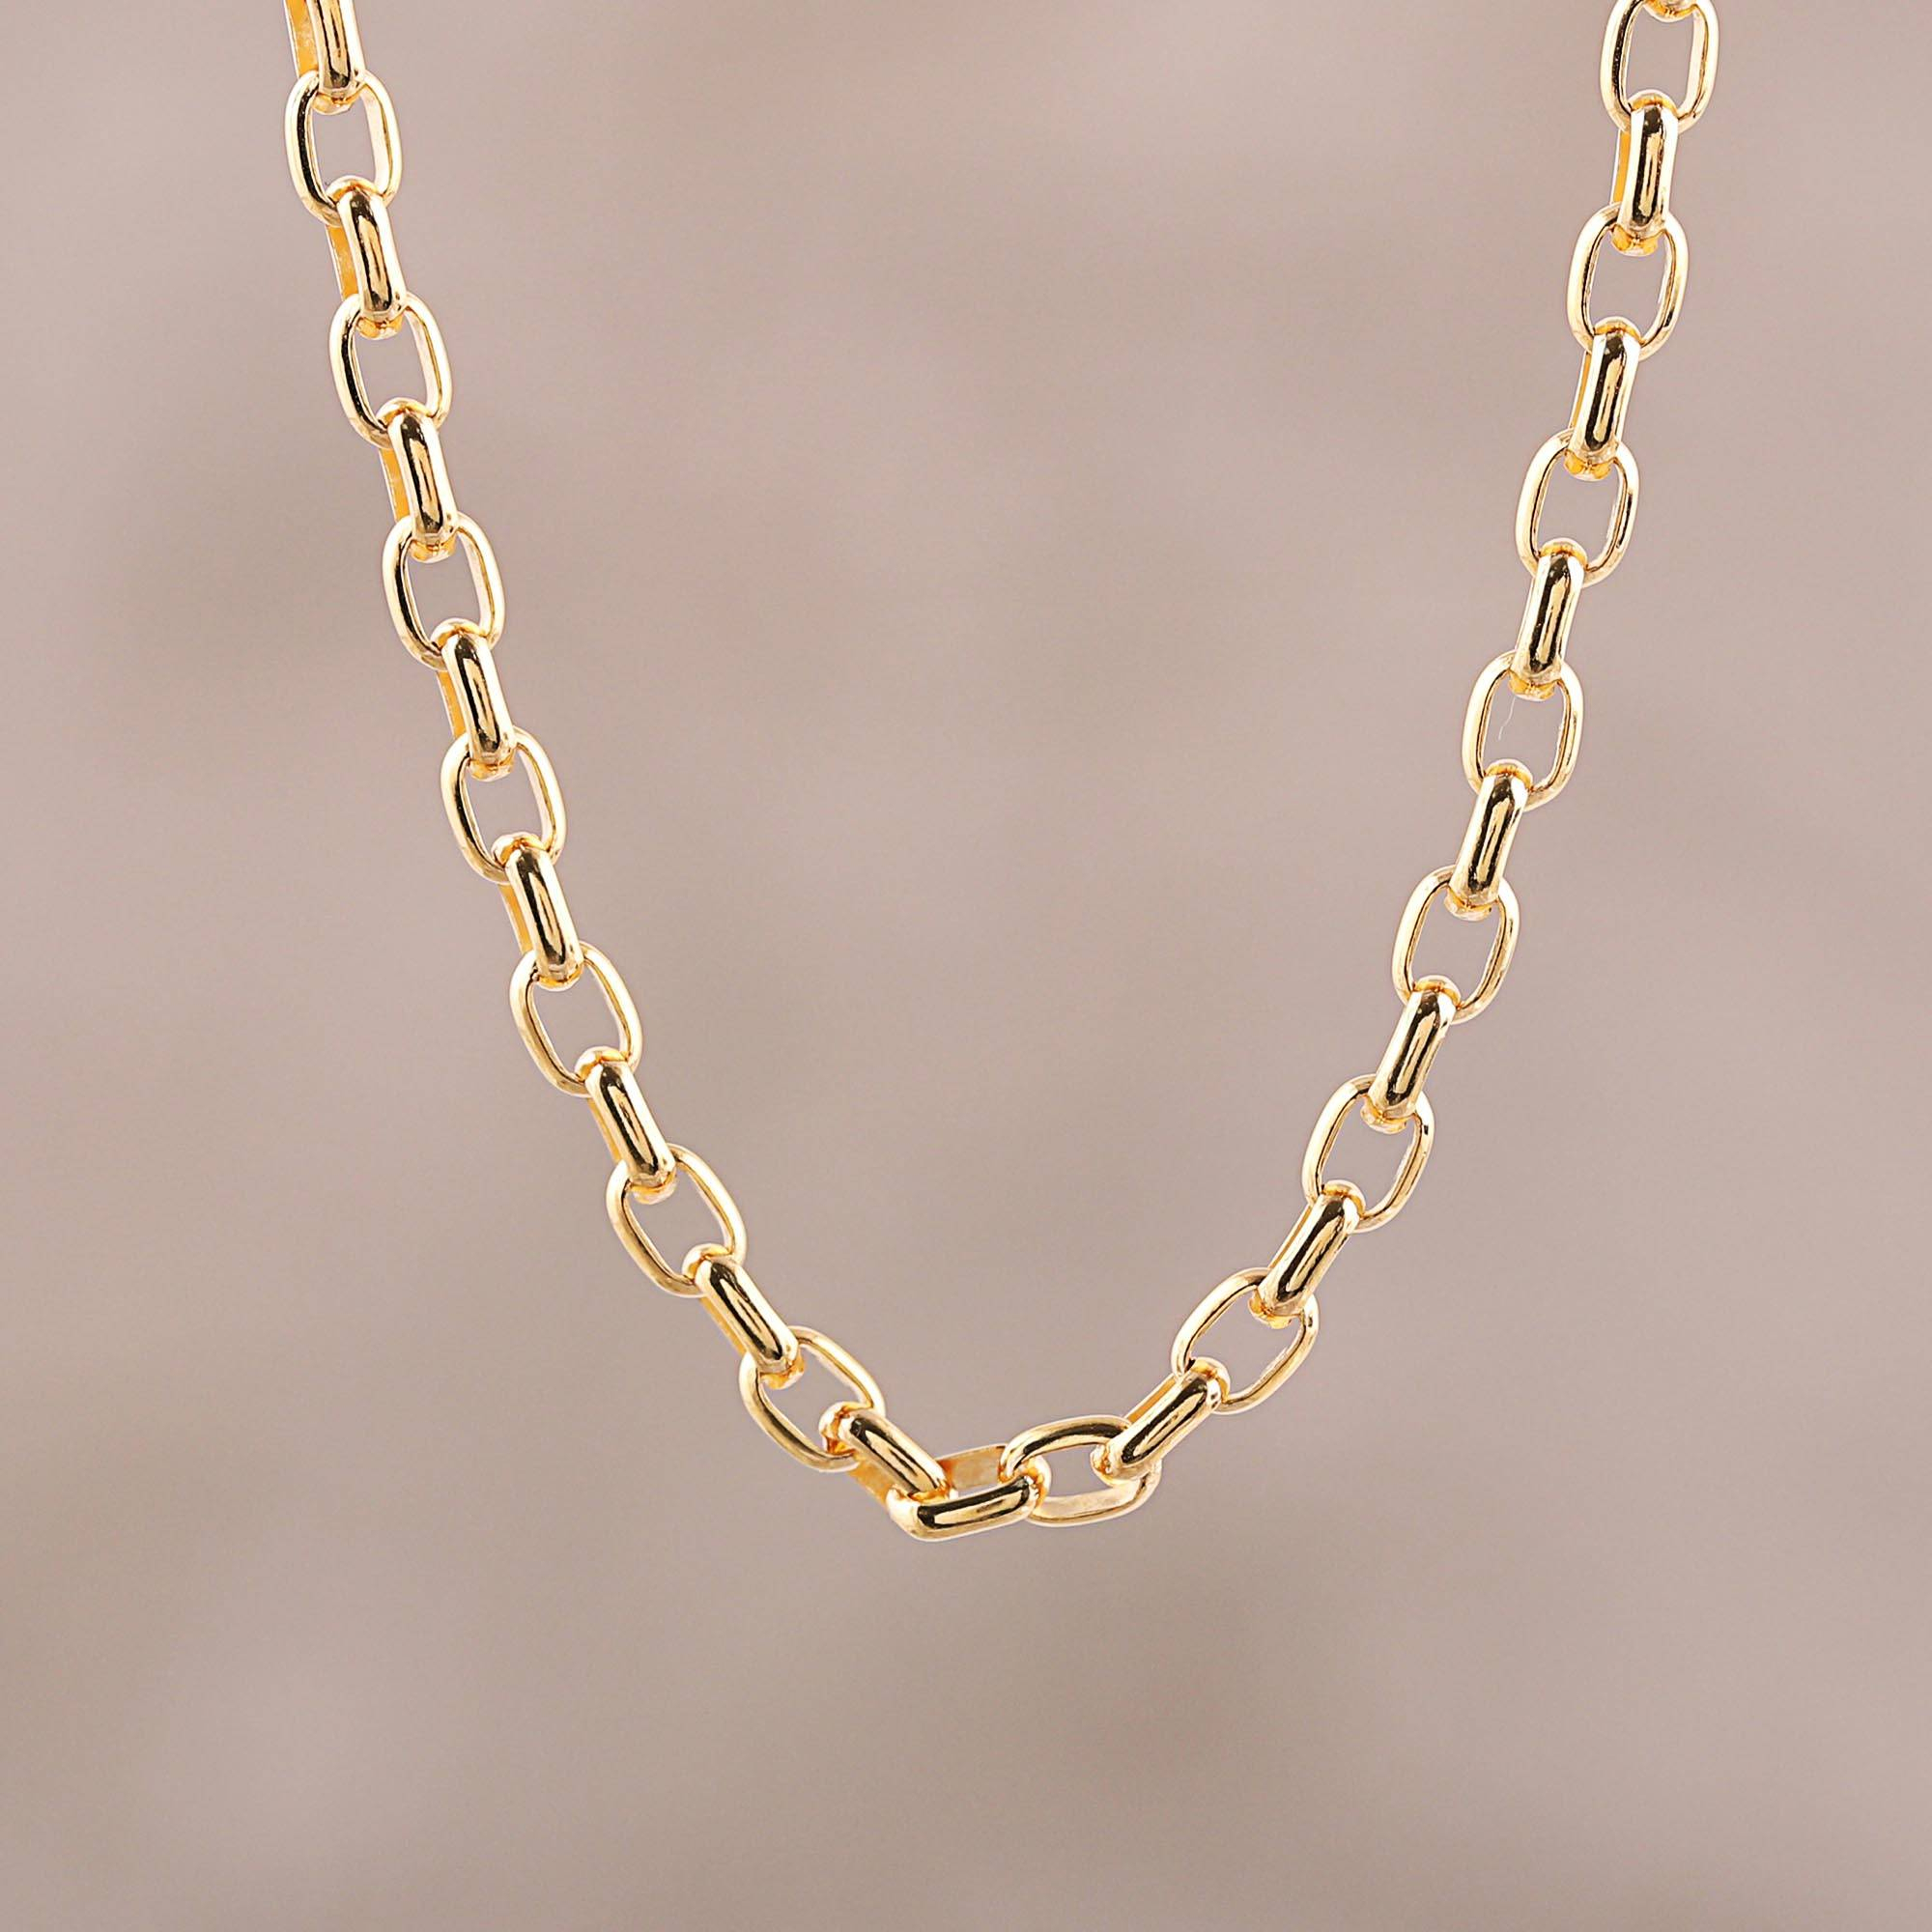 22K Gold Plated Sterling Silver Chain Necklace From India, 'classic Gold' Regarding Most Popular Classic Cable Chain Necklaces (View 5 of 25)